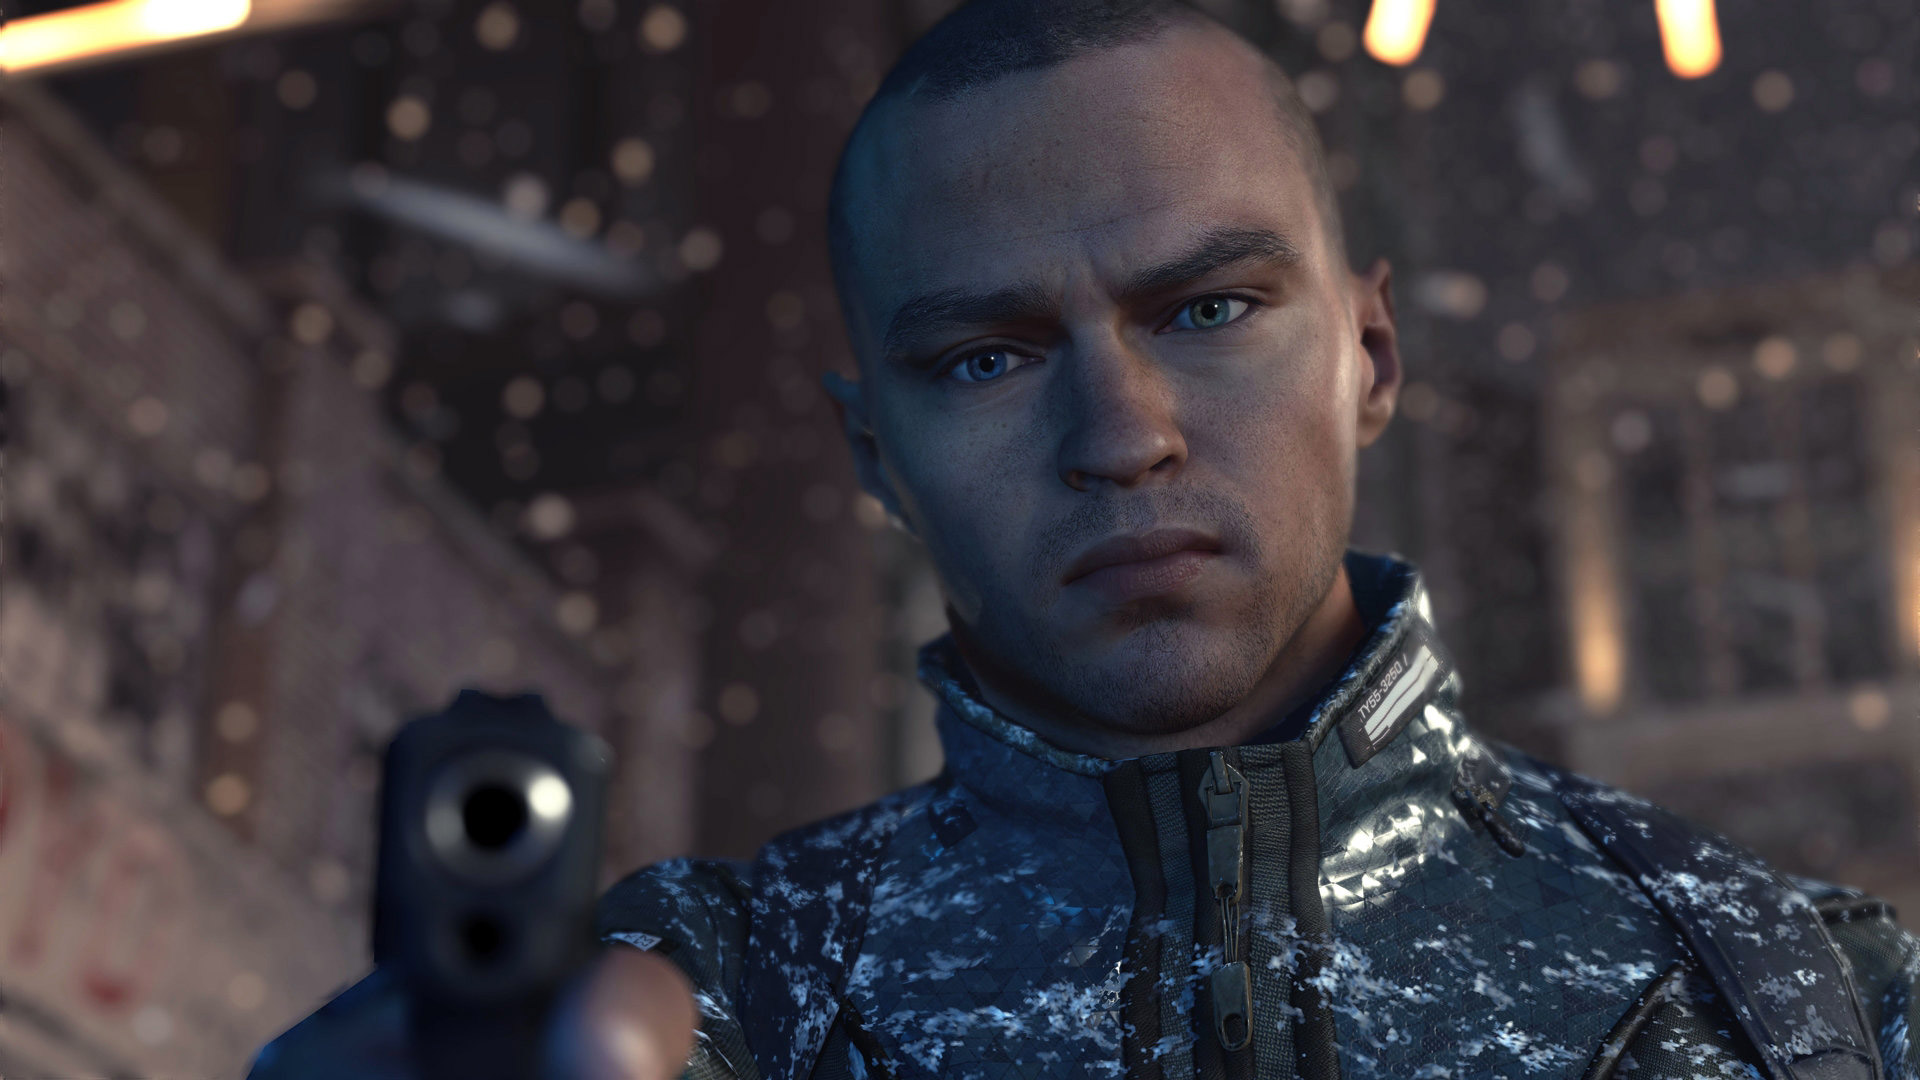 Markus: The Butler - If you watched the trailer linked above, you would have gotten a fair amount of the storyline from the 1 minute trailer. As you would have noticed, Markus is a butler for a rich elderly man, until he leave to become the face of the revolution of deviant androids.I think most people will find him to be the most fun to play as, since his story is overflowing with civil rights and slavery tropes.At the same time, it was also quite thought provoking if you are interested in those topics.I know not everyone cares about those kinds of topics,but as a minority, I found it rather moving. Markus ends up having some of the harder decisions to make in the game, hope you're ready for it!